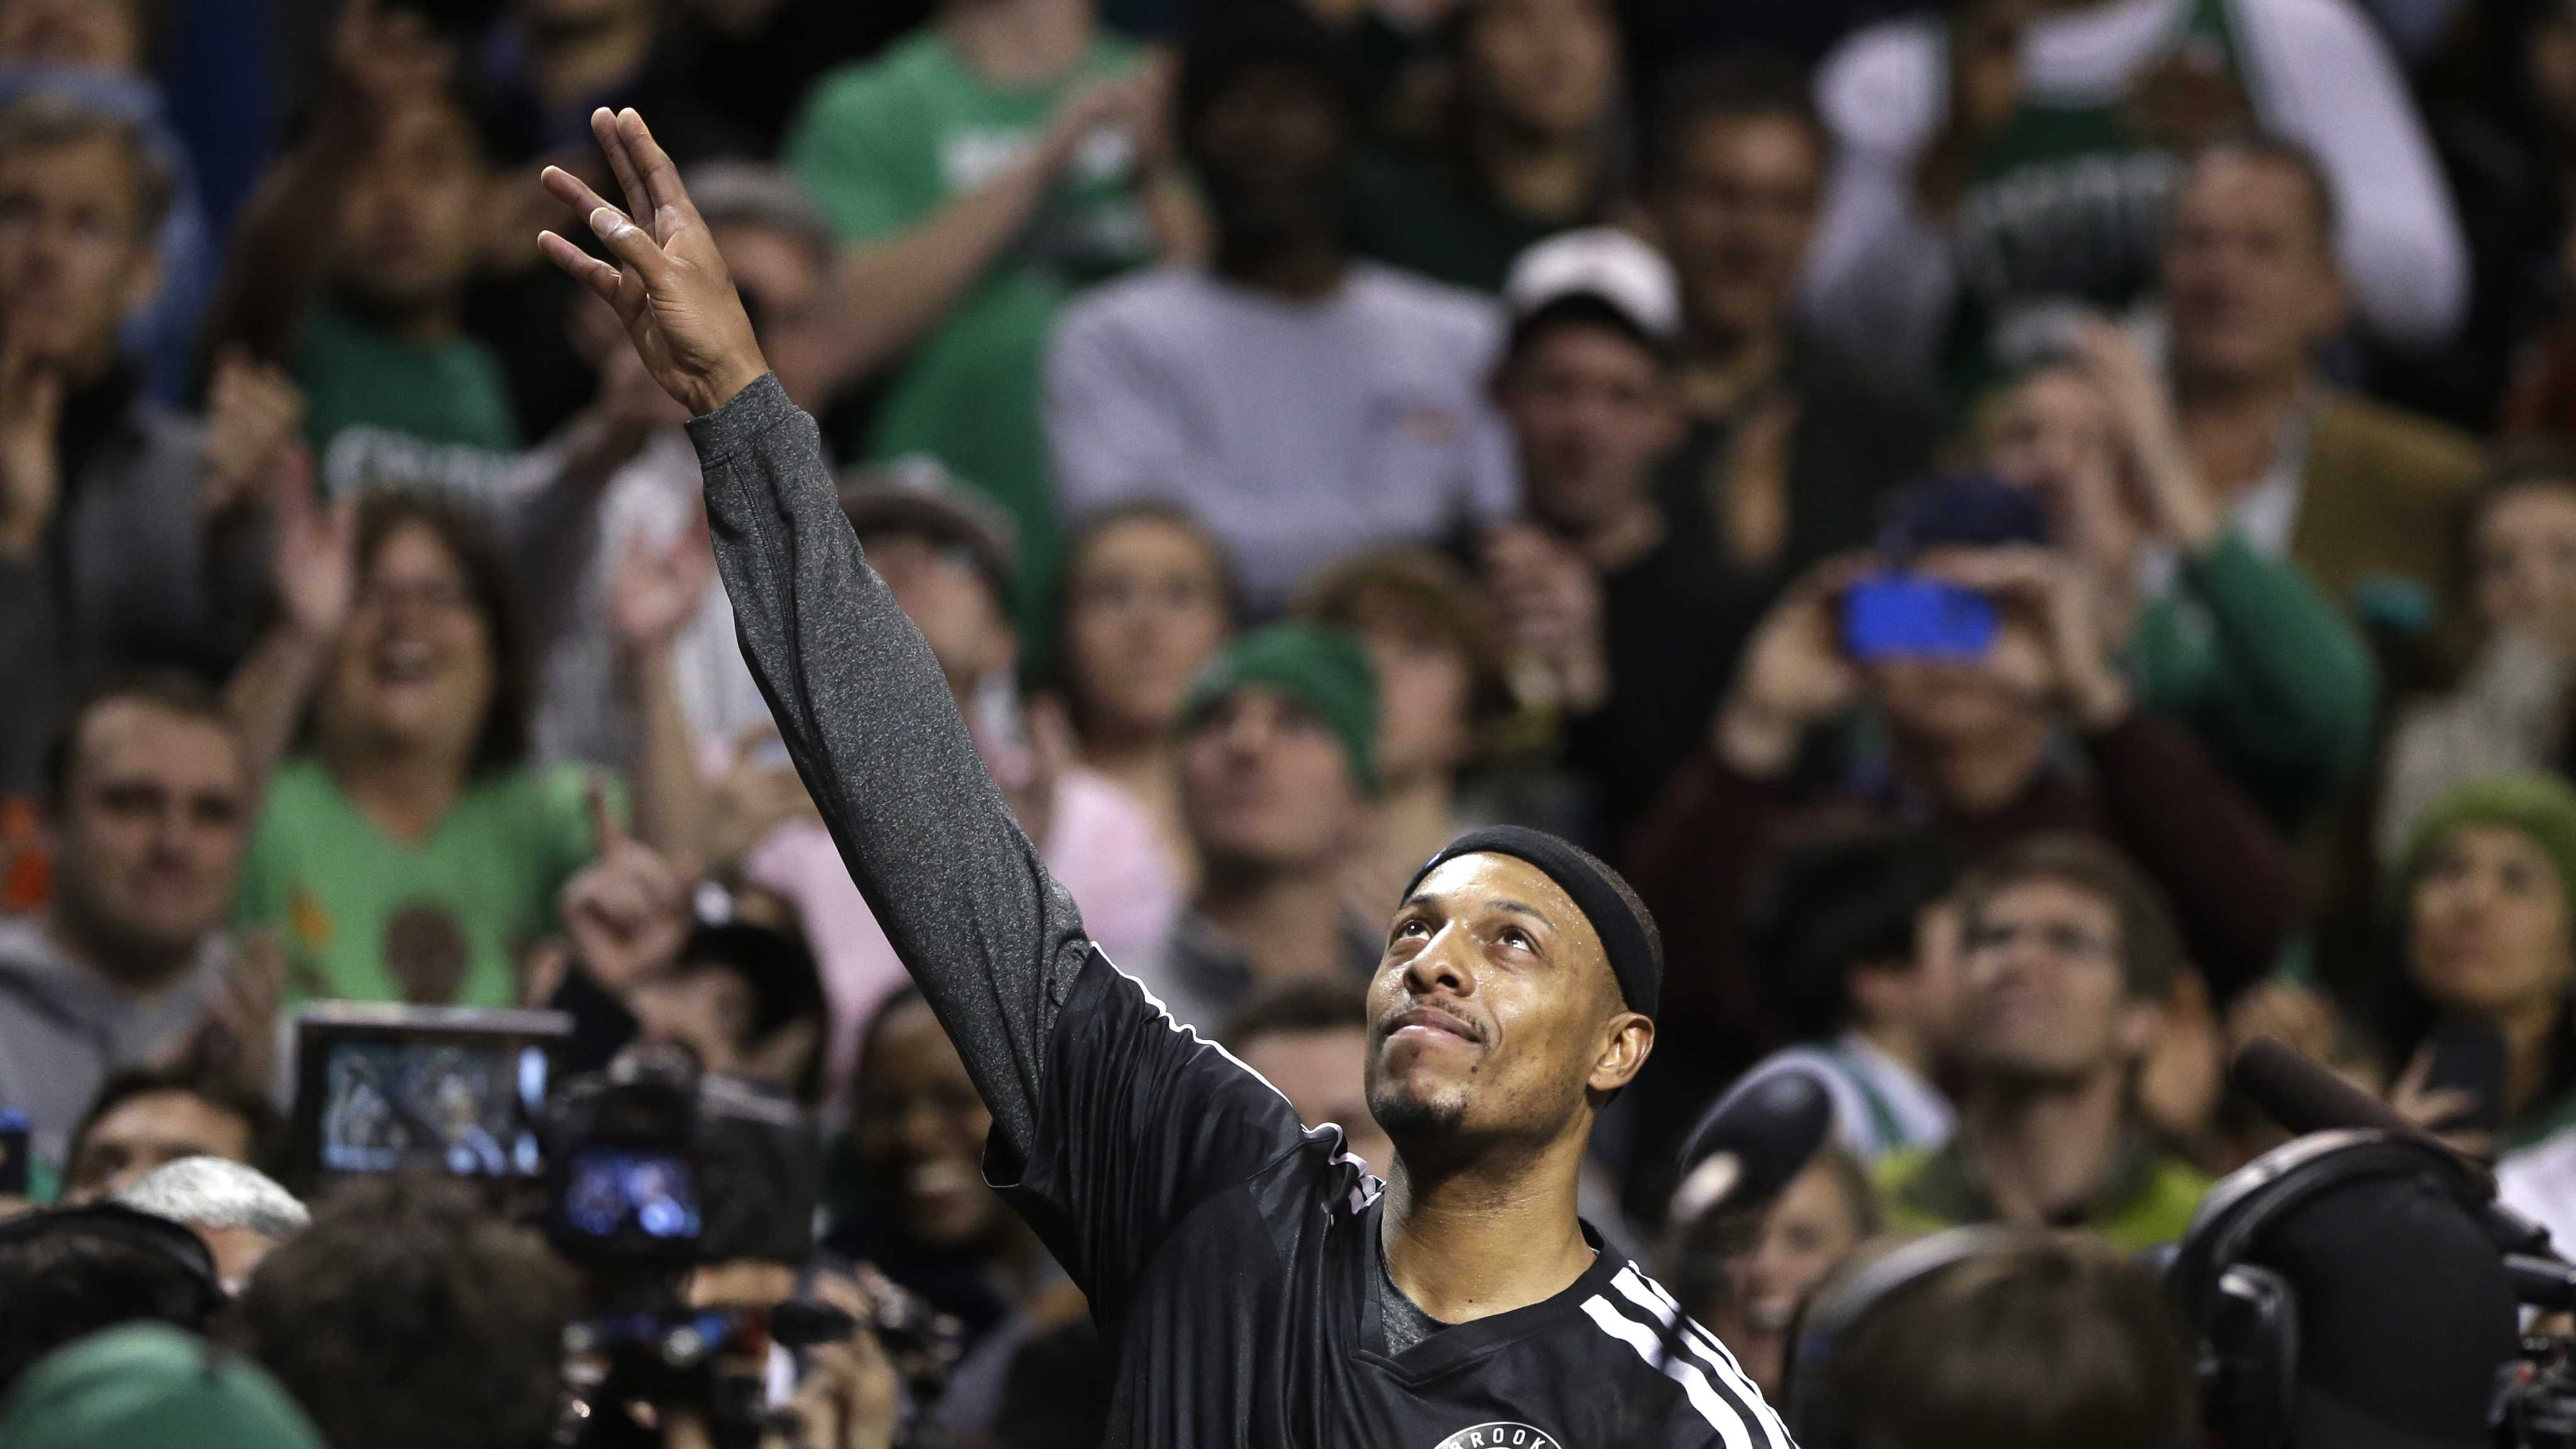 Brooklyn Nets forward Paul Pierce, center, formerly of the Boston Celtics, waves to the crowd during a tribute to him in an NBA basketball game against the Boston Celtics, Sunday, Jan. 26, 2014, in Boston.